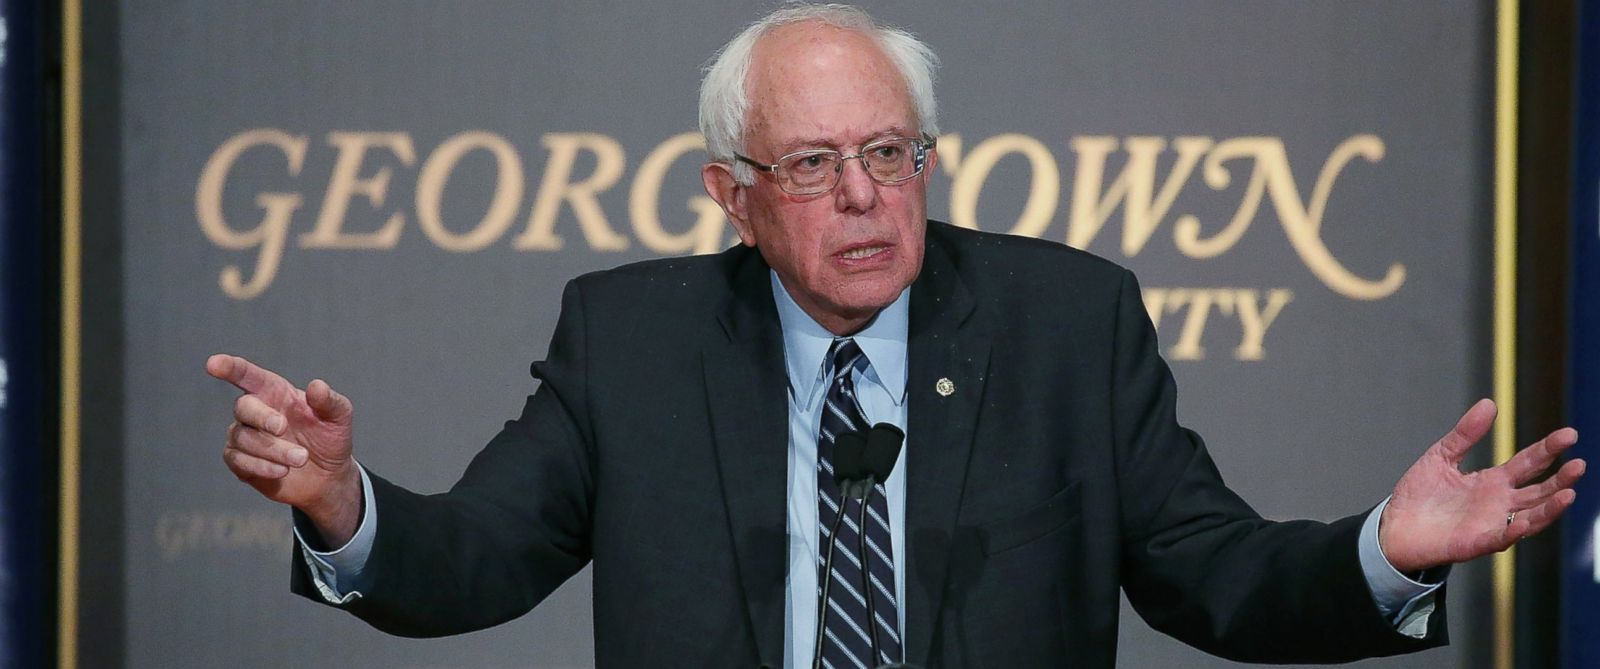 story bernie sanders democratic socialist what does that term mean